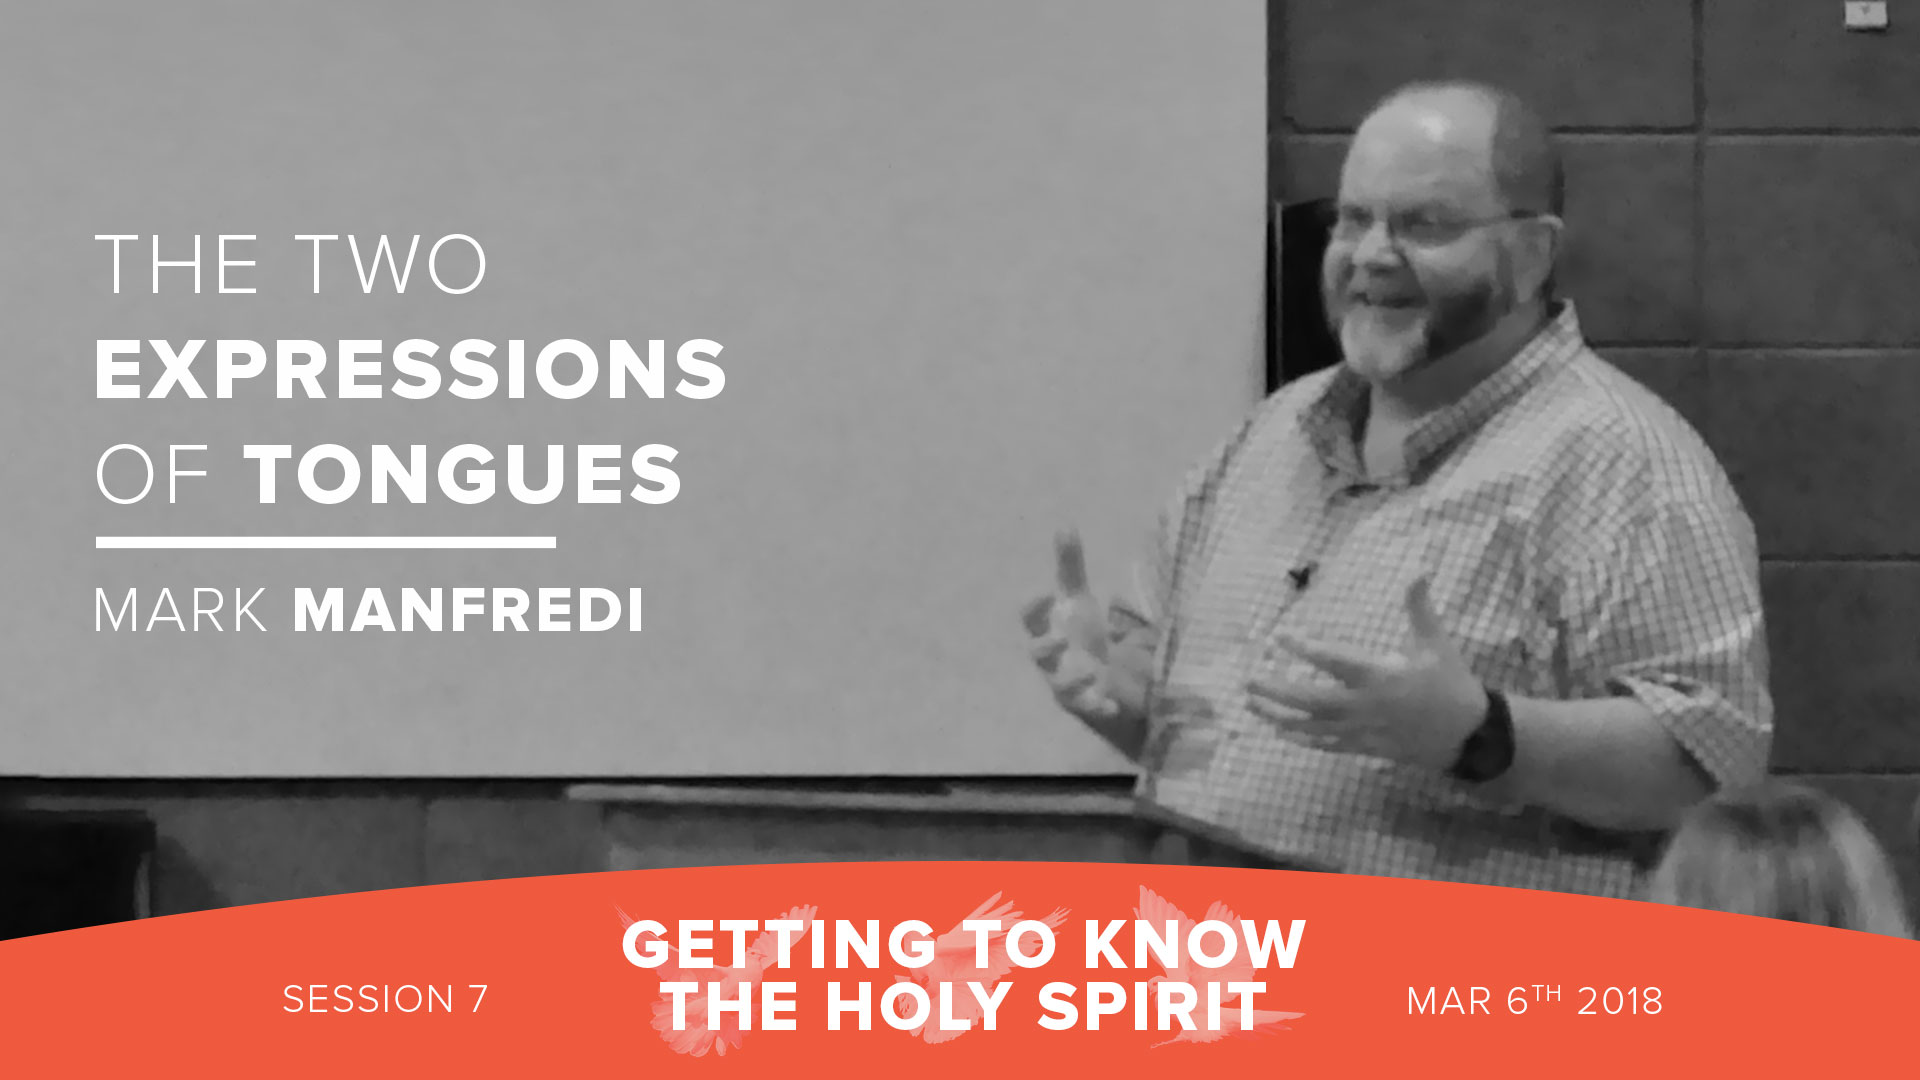 Session 7 - The Two Expressions of Tongues